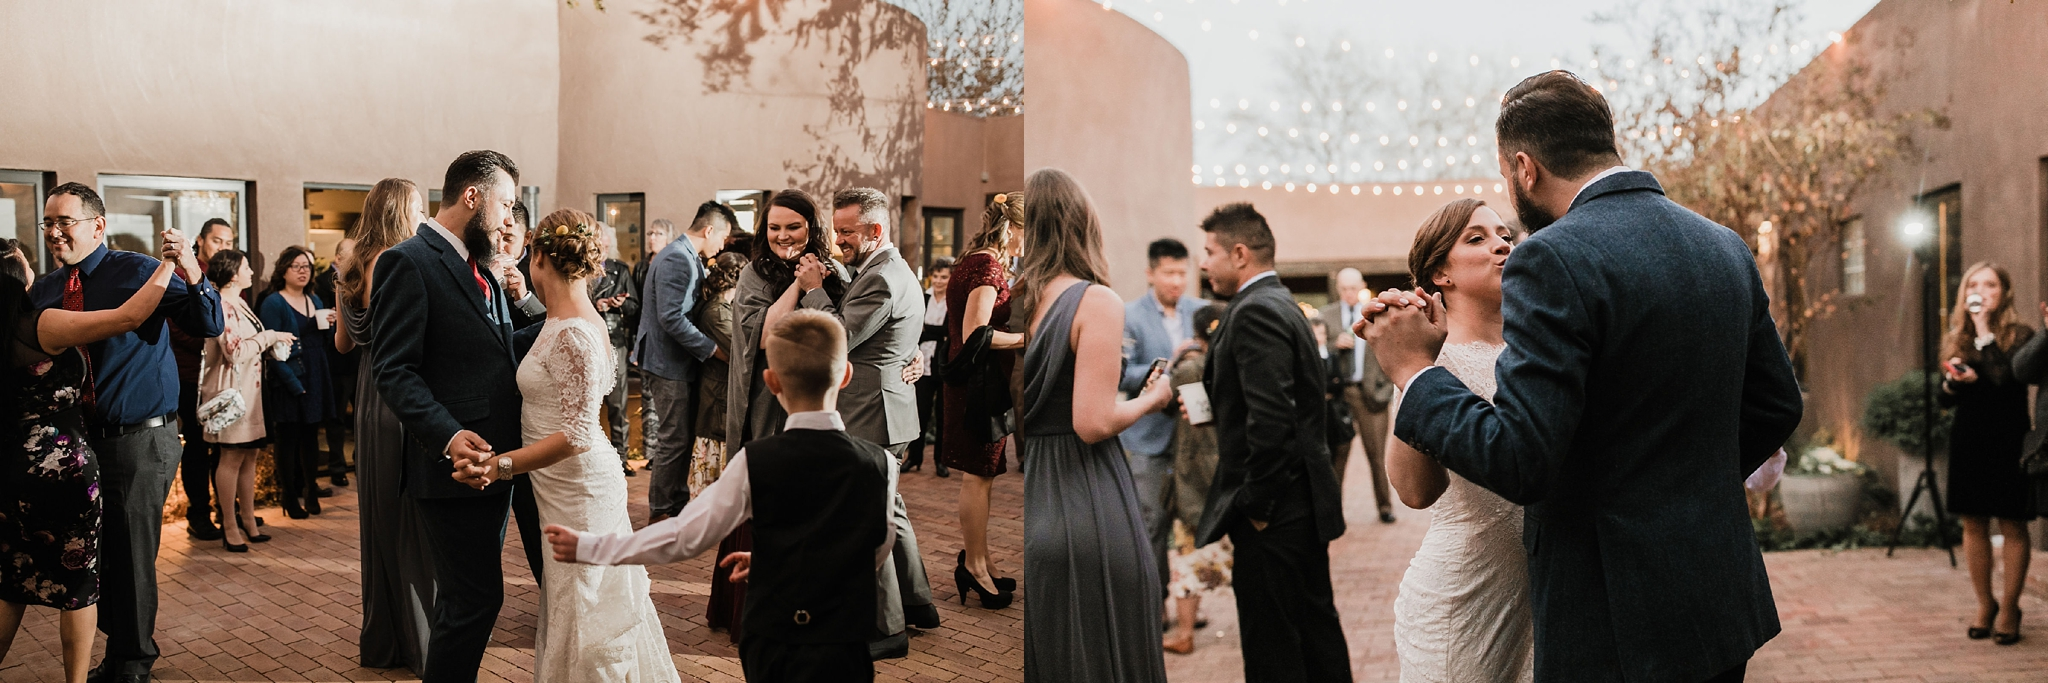 Alicia+lucia+photography+-+albuquerque+wedding+photographer+-+santa+fe+wedding+photography+-+new+mexico+wedding+photographer+-+albuquerque+wedding+-+sarabande+bed+breakfast+-+bed+and+breakfast+wedding_0110.jpg